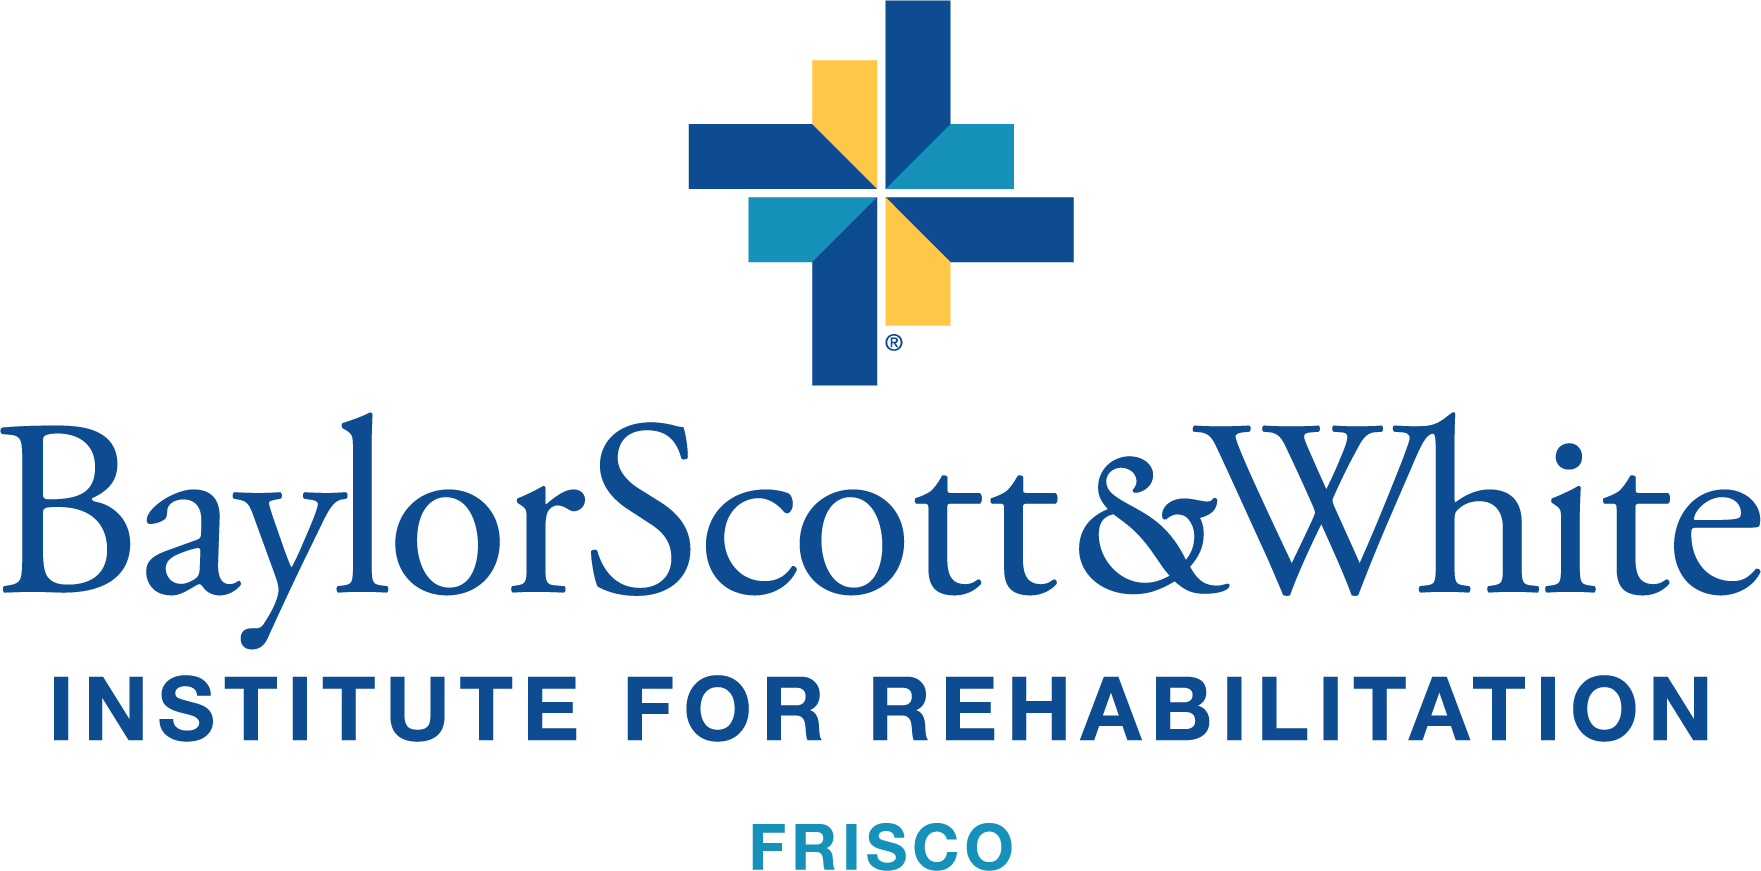 https://integrity-gc.com/wp-content/uploads/2019/10/BSWRehab-Frisco_C_4c.png